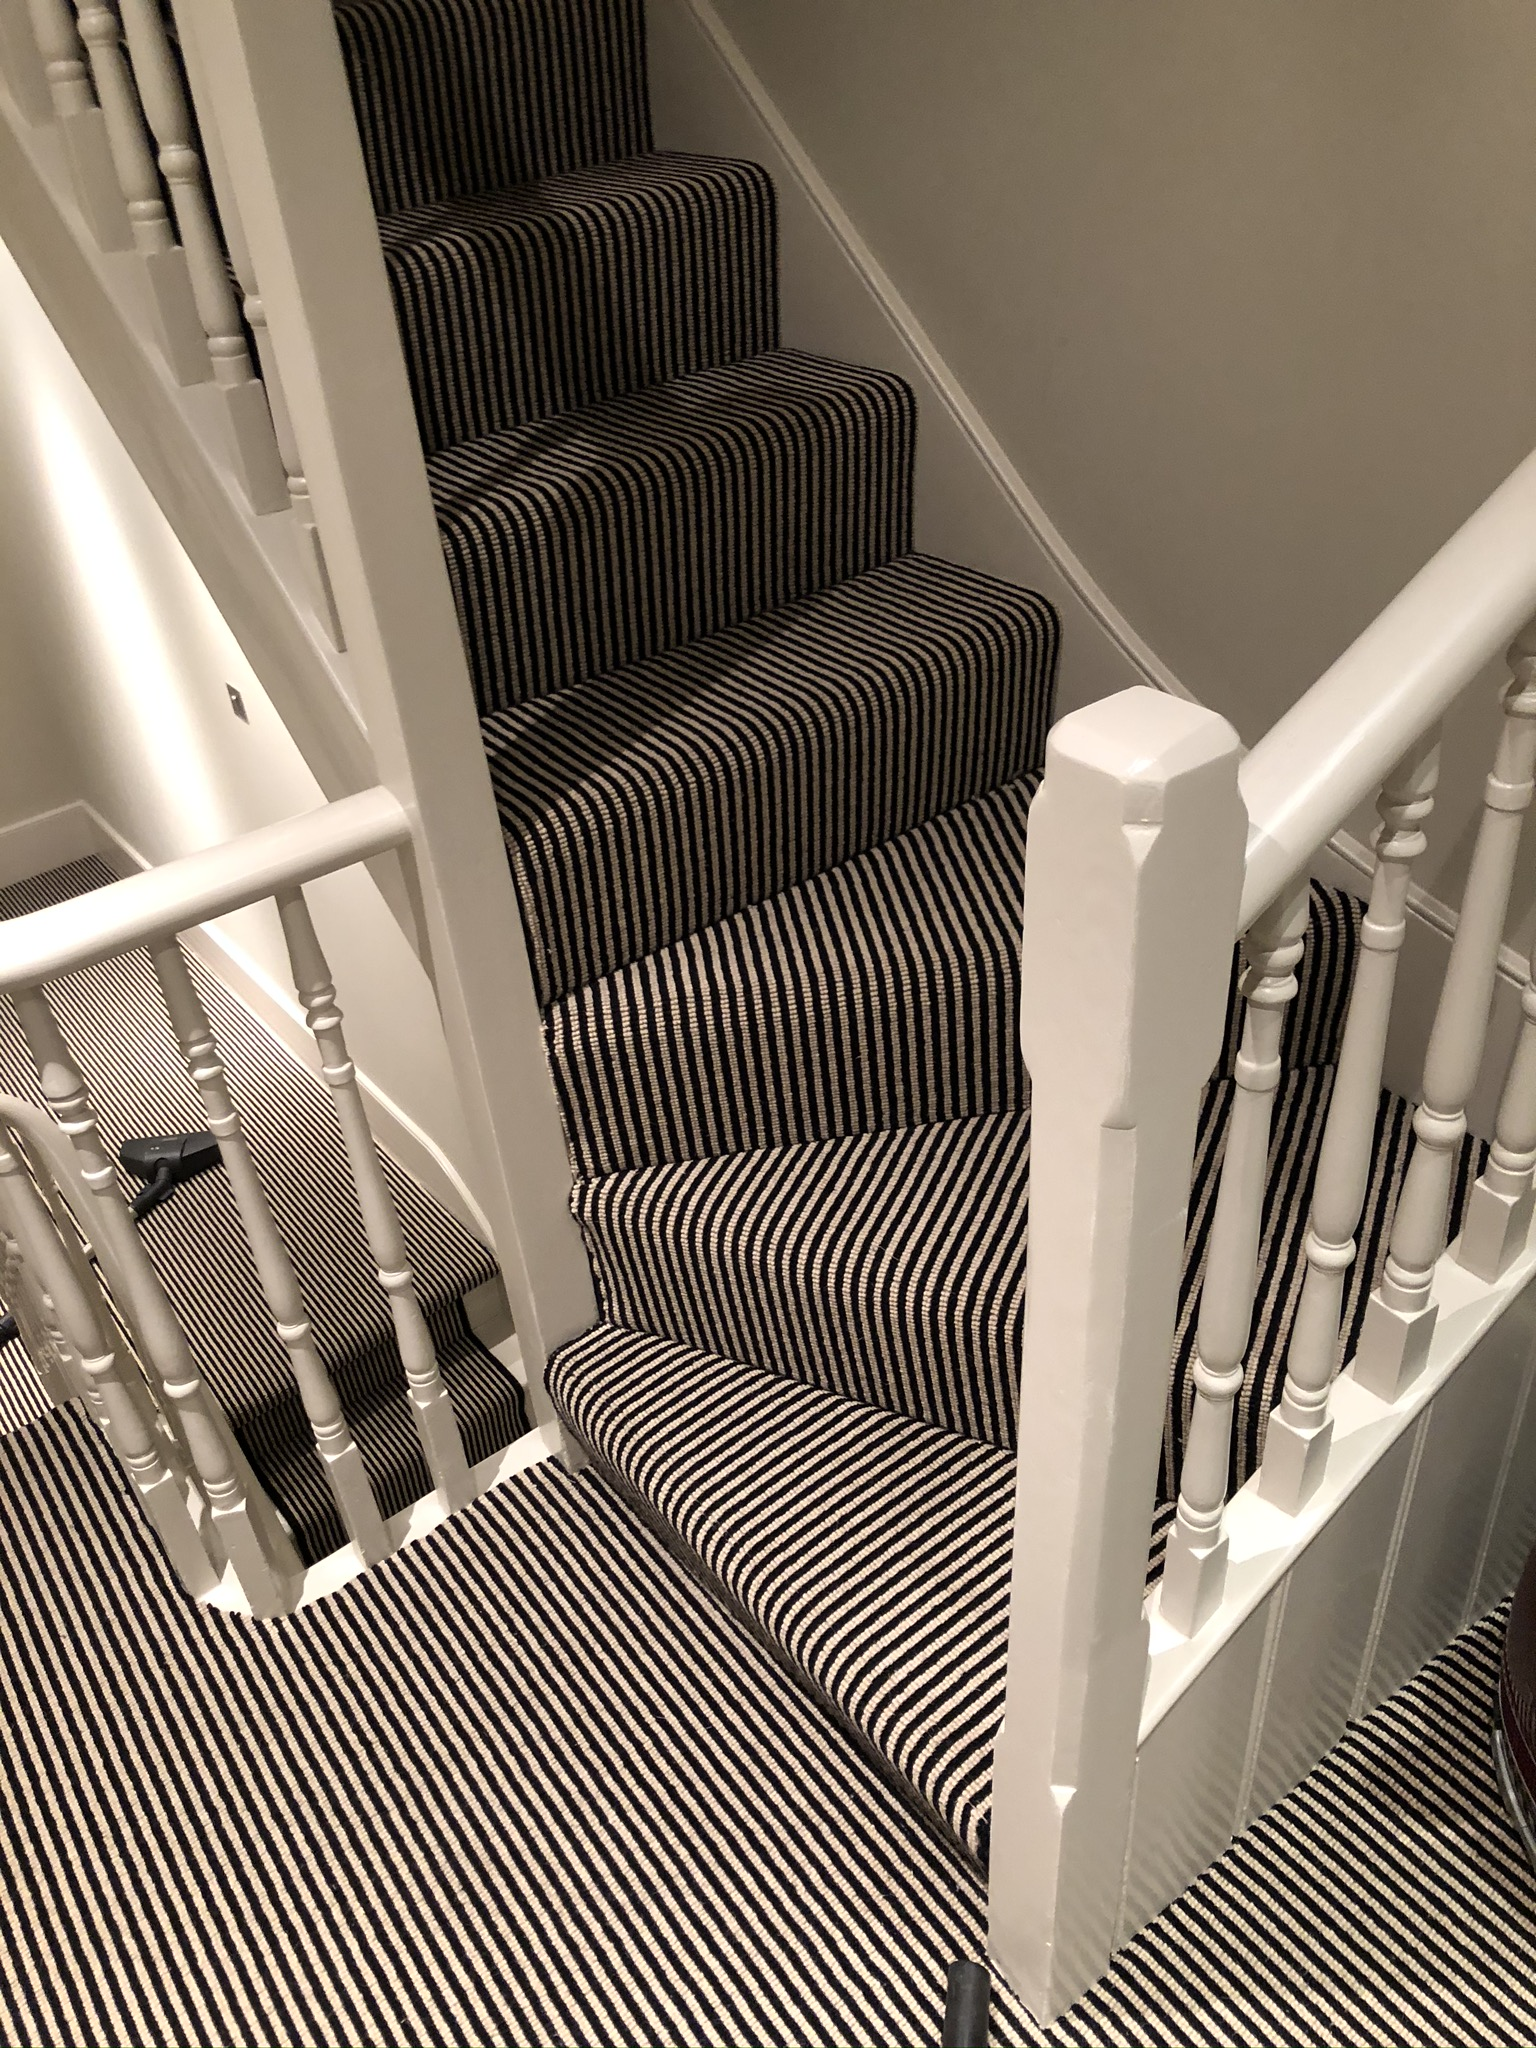 Hugh Mackay Carpets Deco Loop Two-Tone Magpie Black & White Stripe Carpet to Premises in Richmond 1